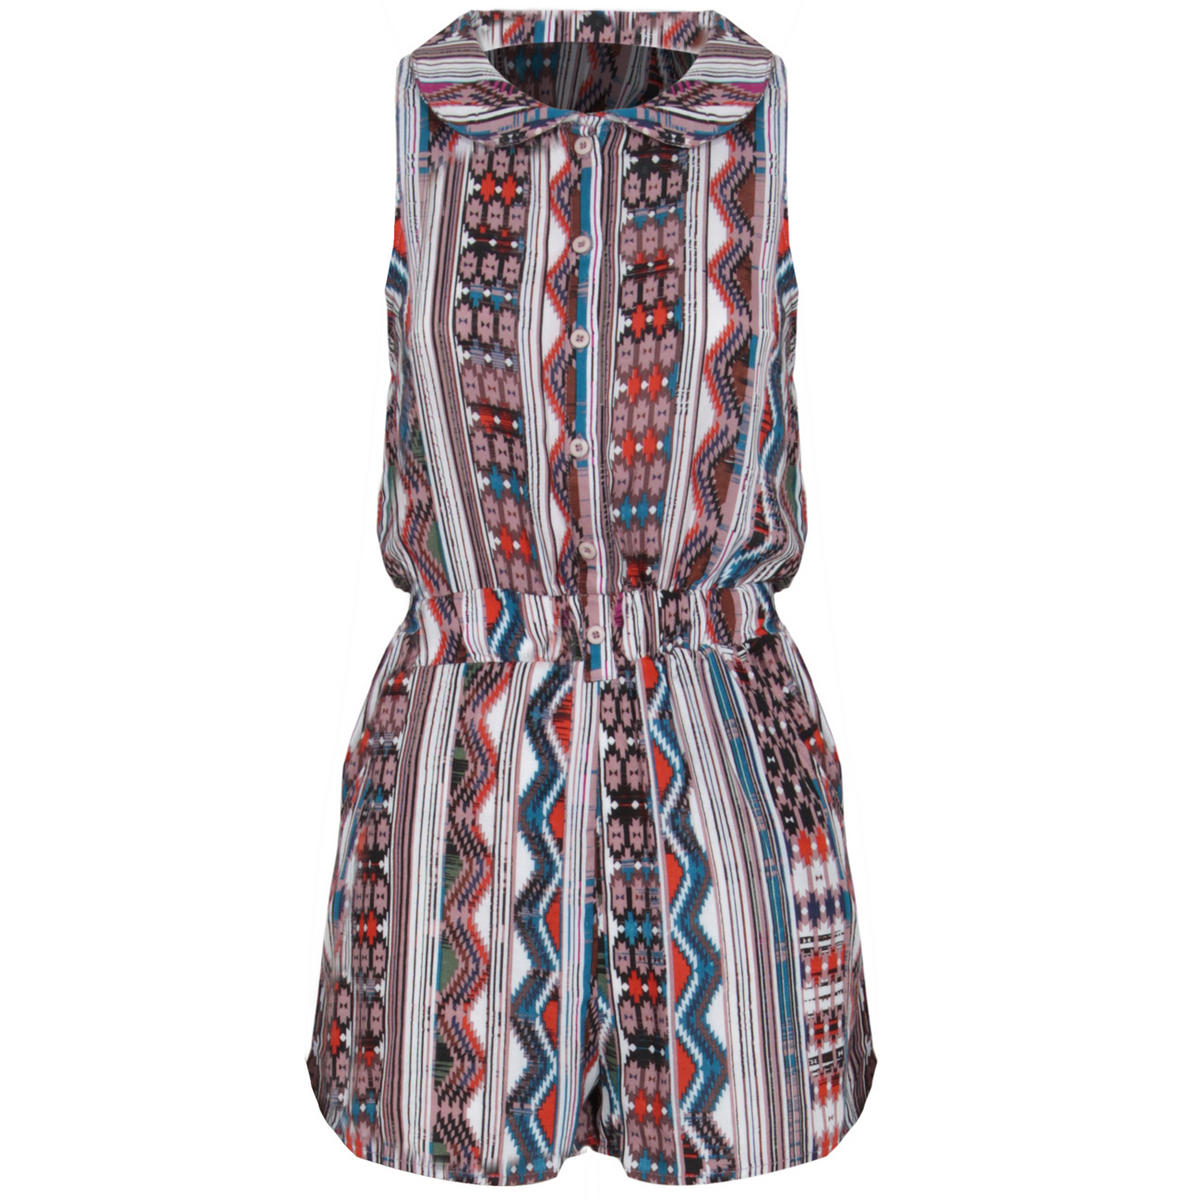 Tribal Print Peter Pan Collar Playsuit In Blue Preview